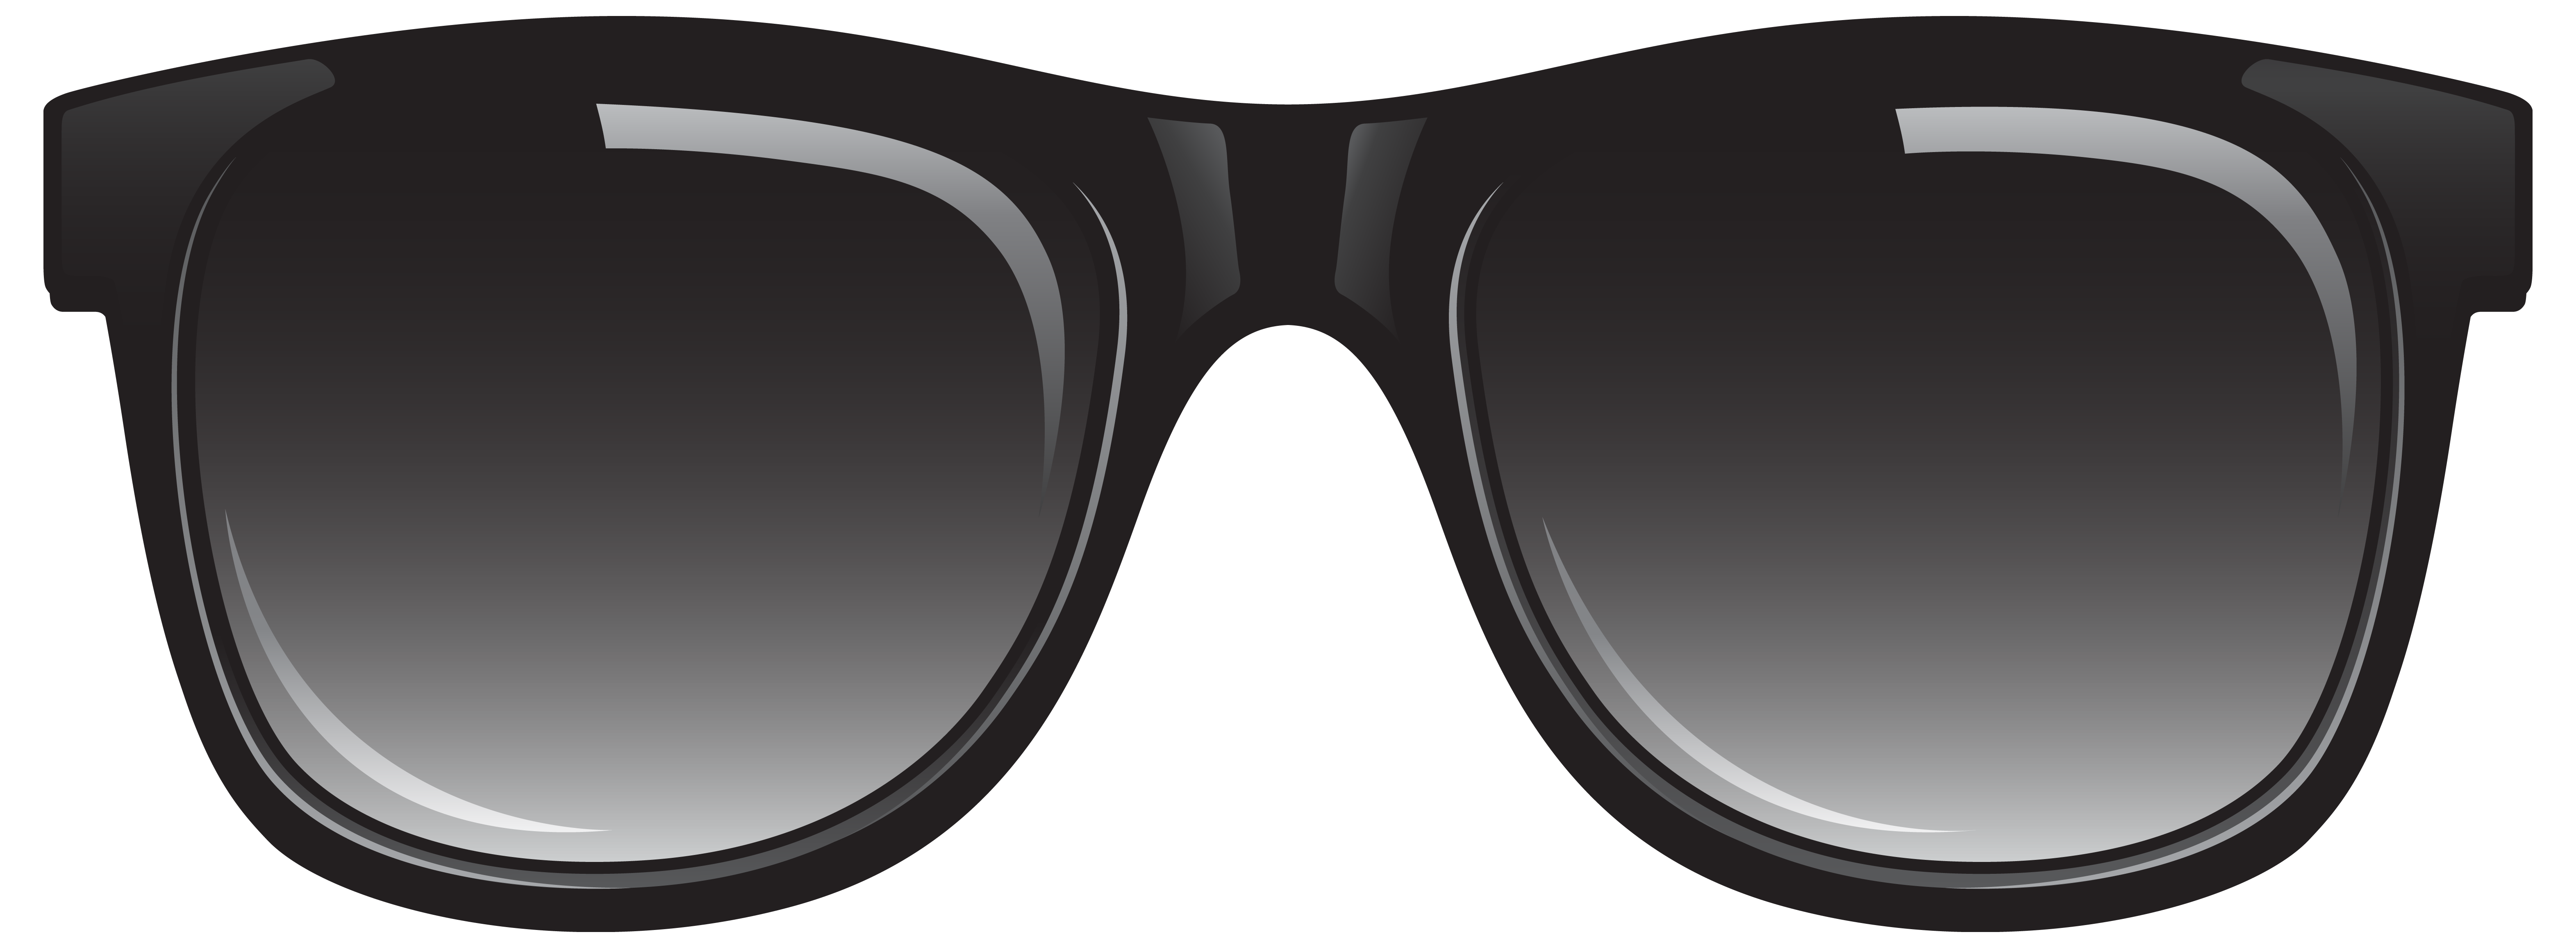 Female clipart sunglasses. Download frames free png